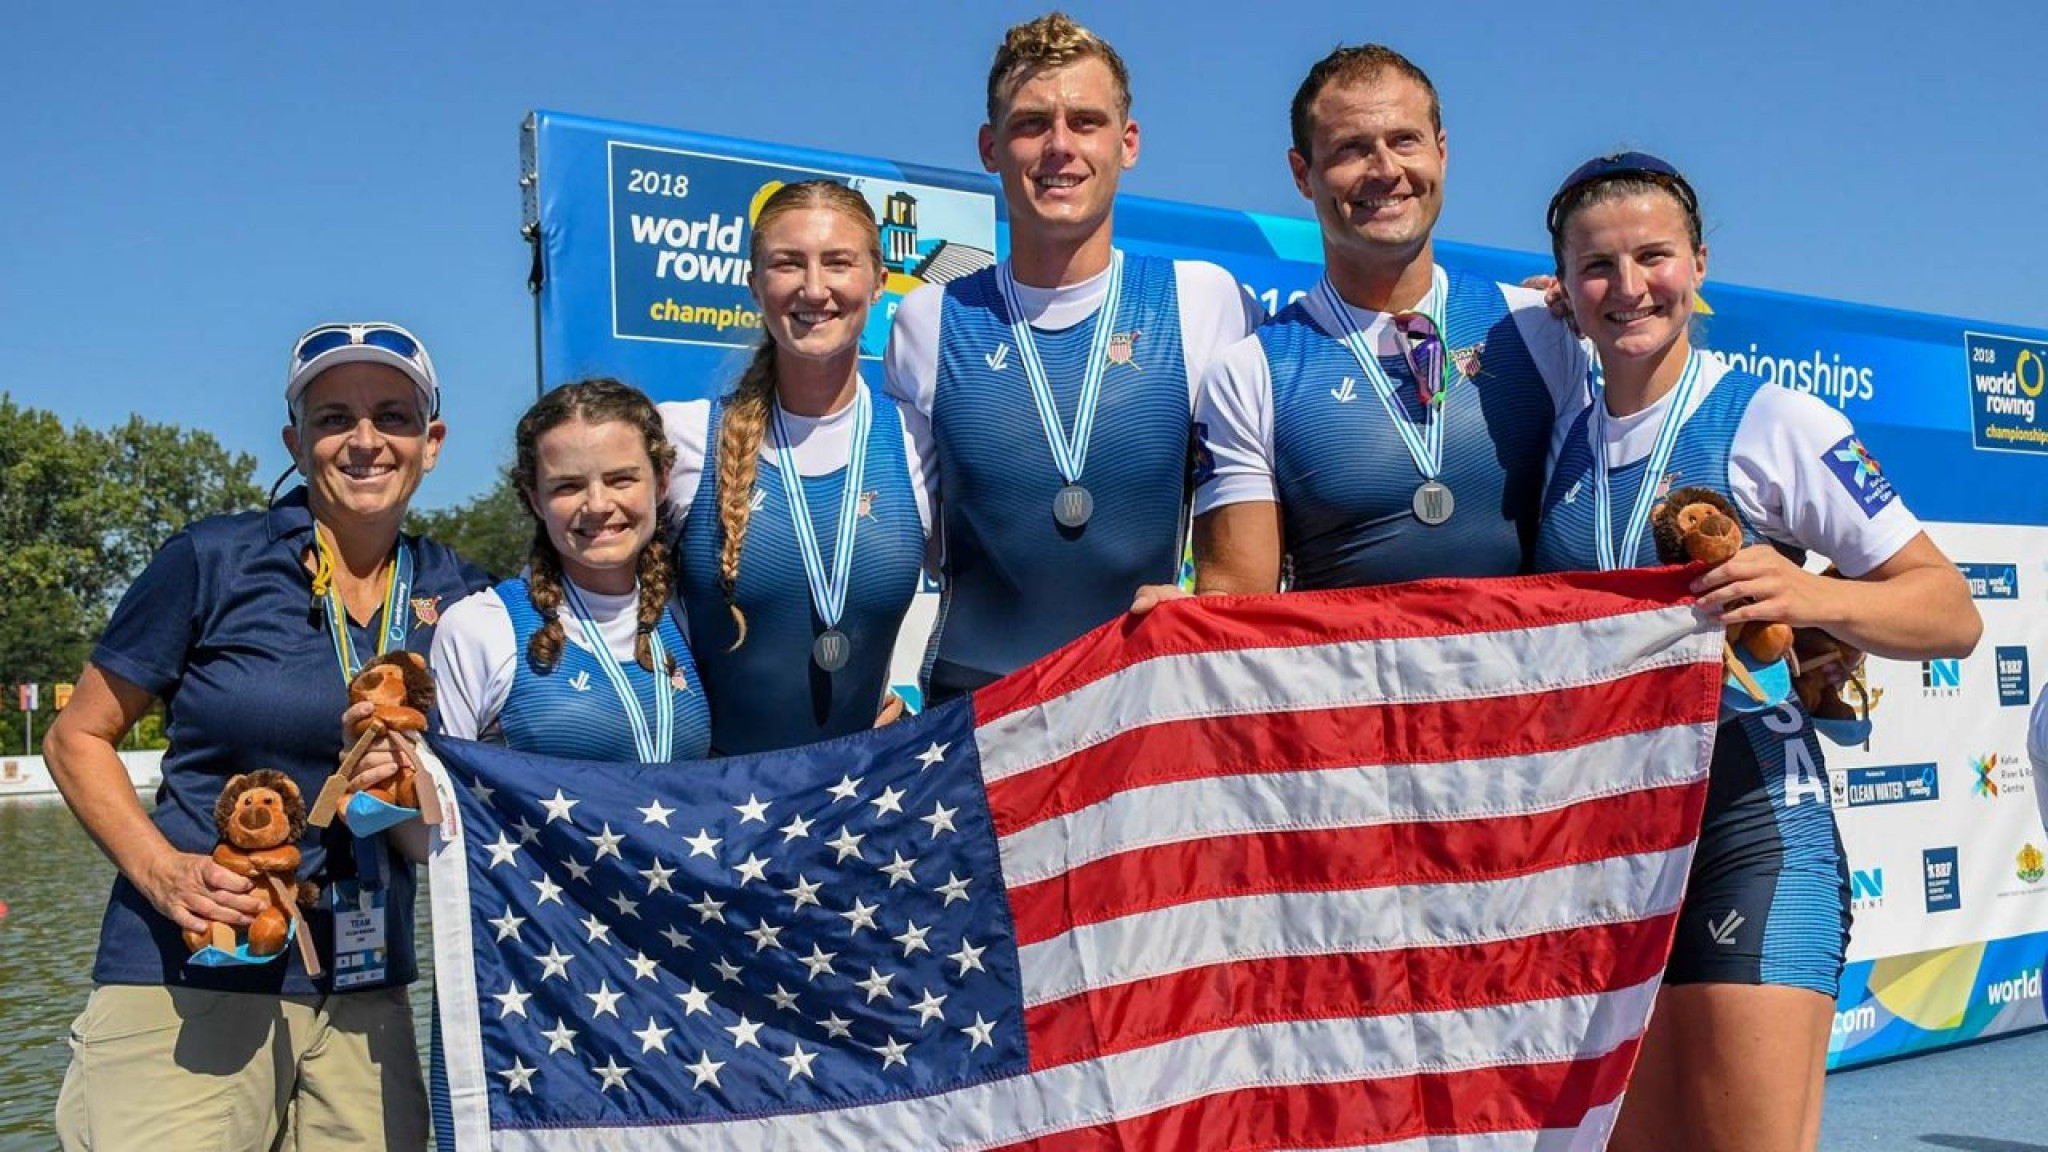 The first American training centre for rowers with disabilities in the United States, the USRowing Para Training Center-Boston, has opened ©USRowing